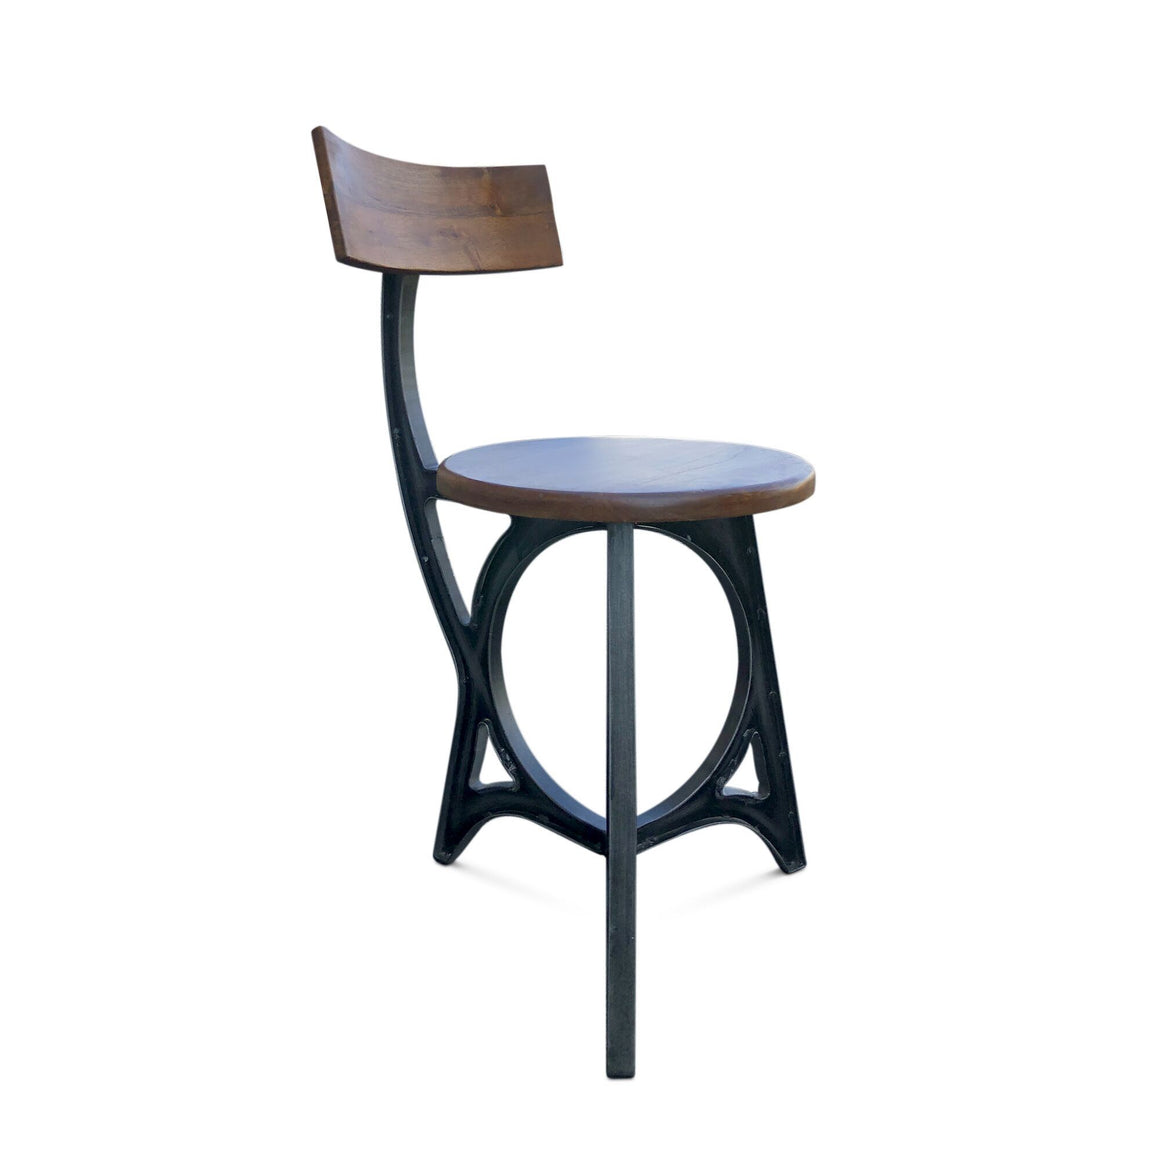 Art Deco Industrial Dining Chair - Iron - Solid Wood - Rustic Deco Incorporated